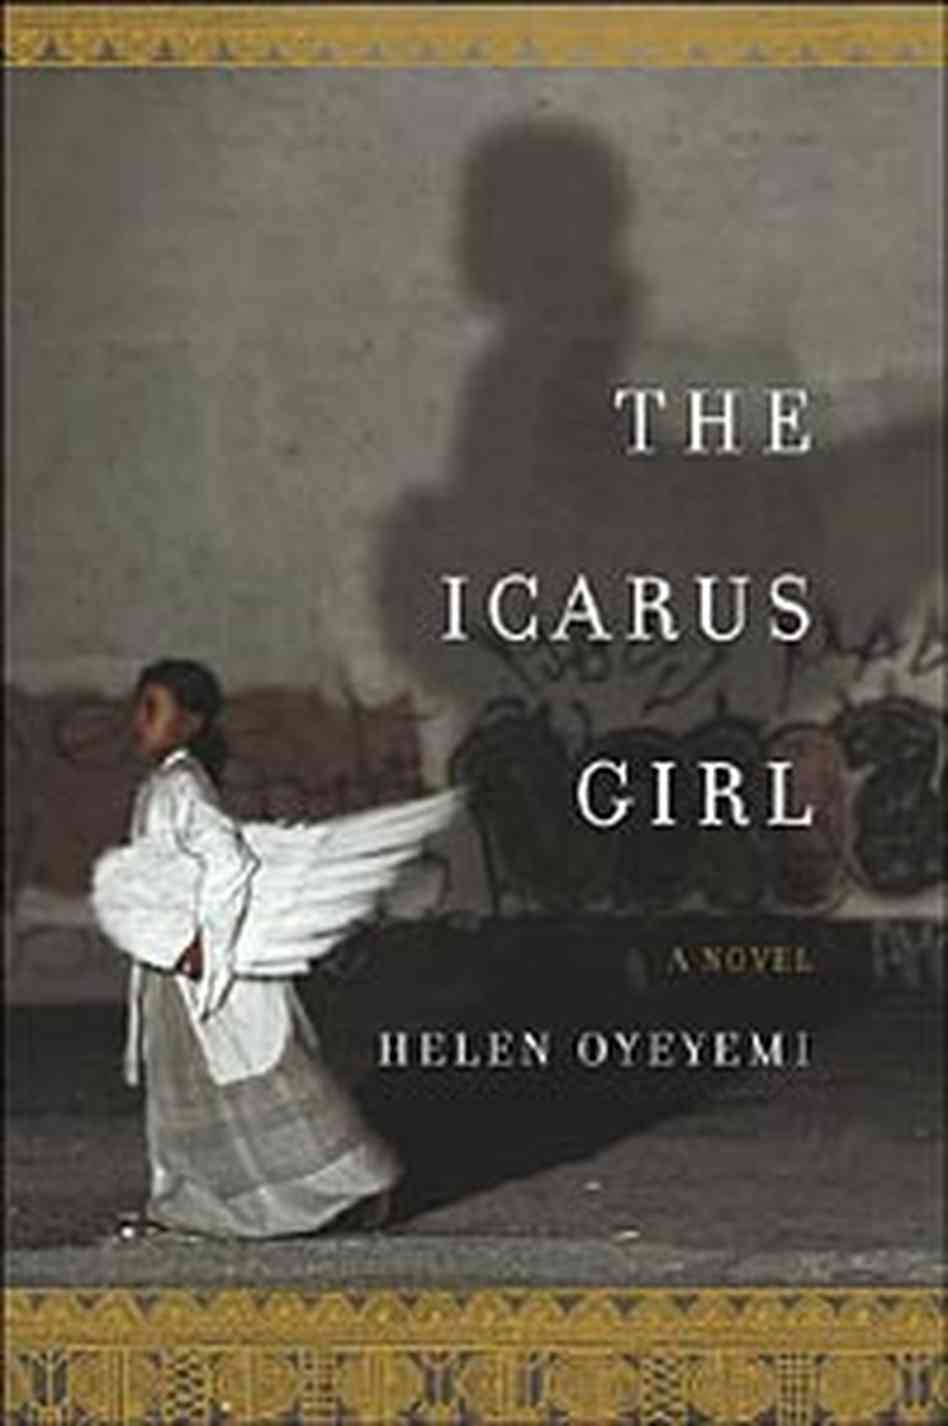 helen oyeyemi s the icarus girl review Although helen oyeyemi's the icarus girl is meant to be a young adult novel, a style i normally dislike, it was actually very well thought-out, complex, and interesting.